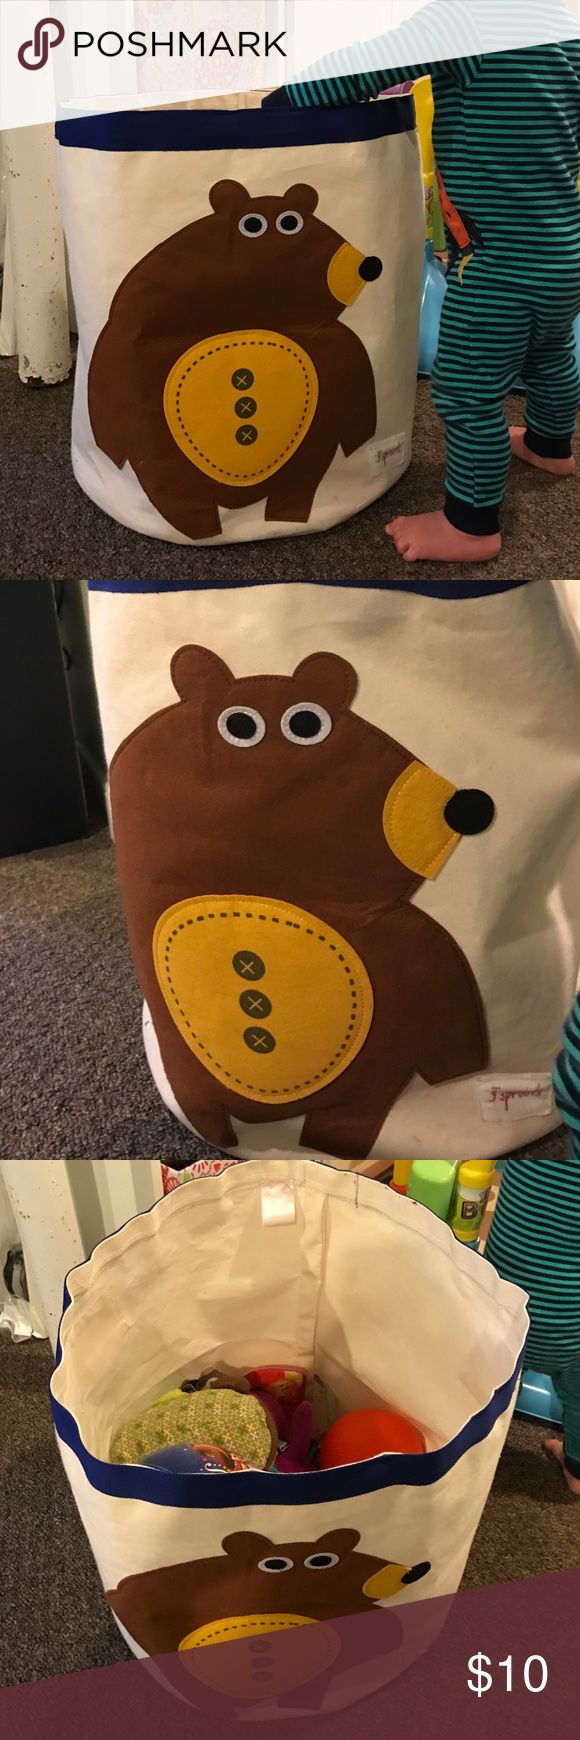 3 sprouts toy bin/hamper Cute bear toy bin or hamper by 3 sprouts. Good condition, just downsizing our toys and no longer need :) 3 Sprouts Other